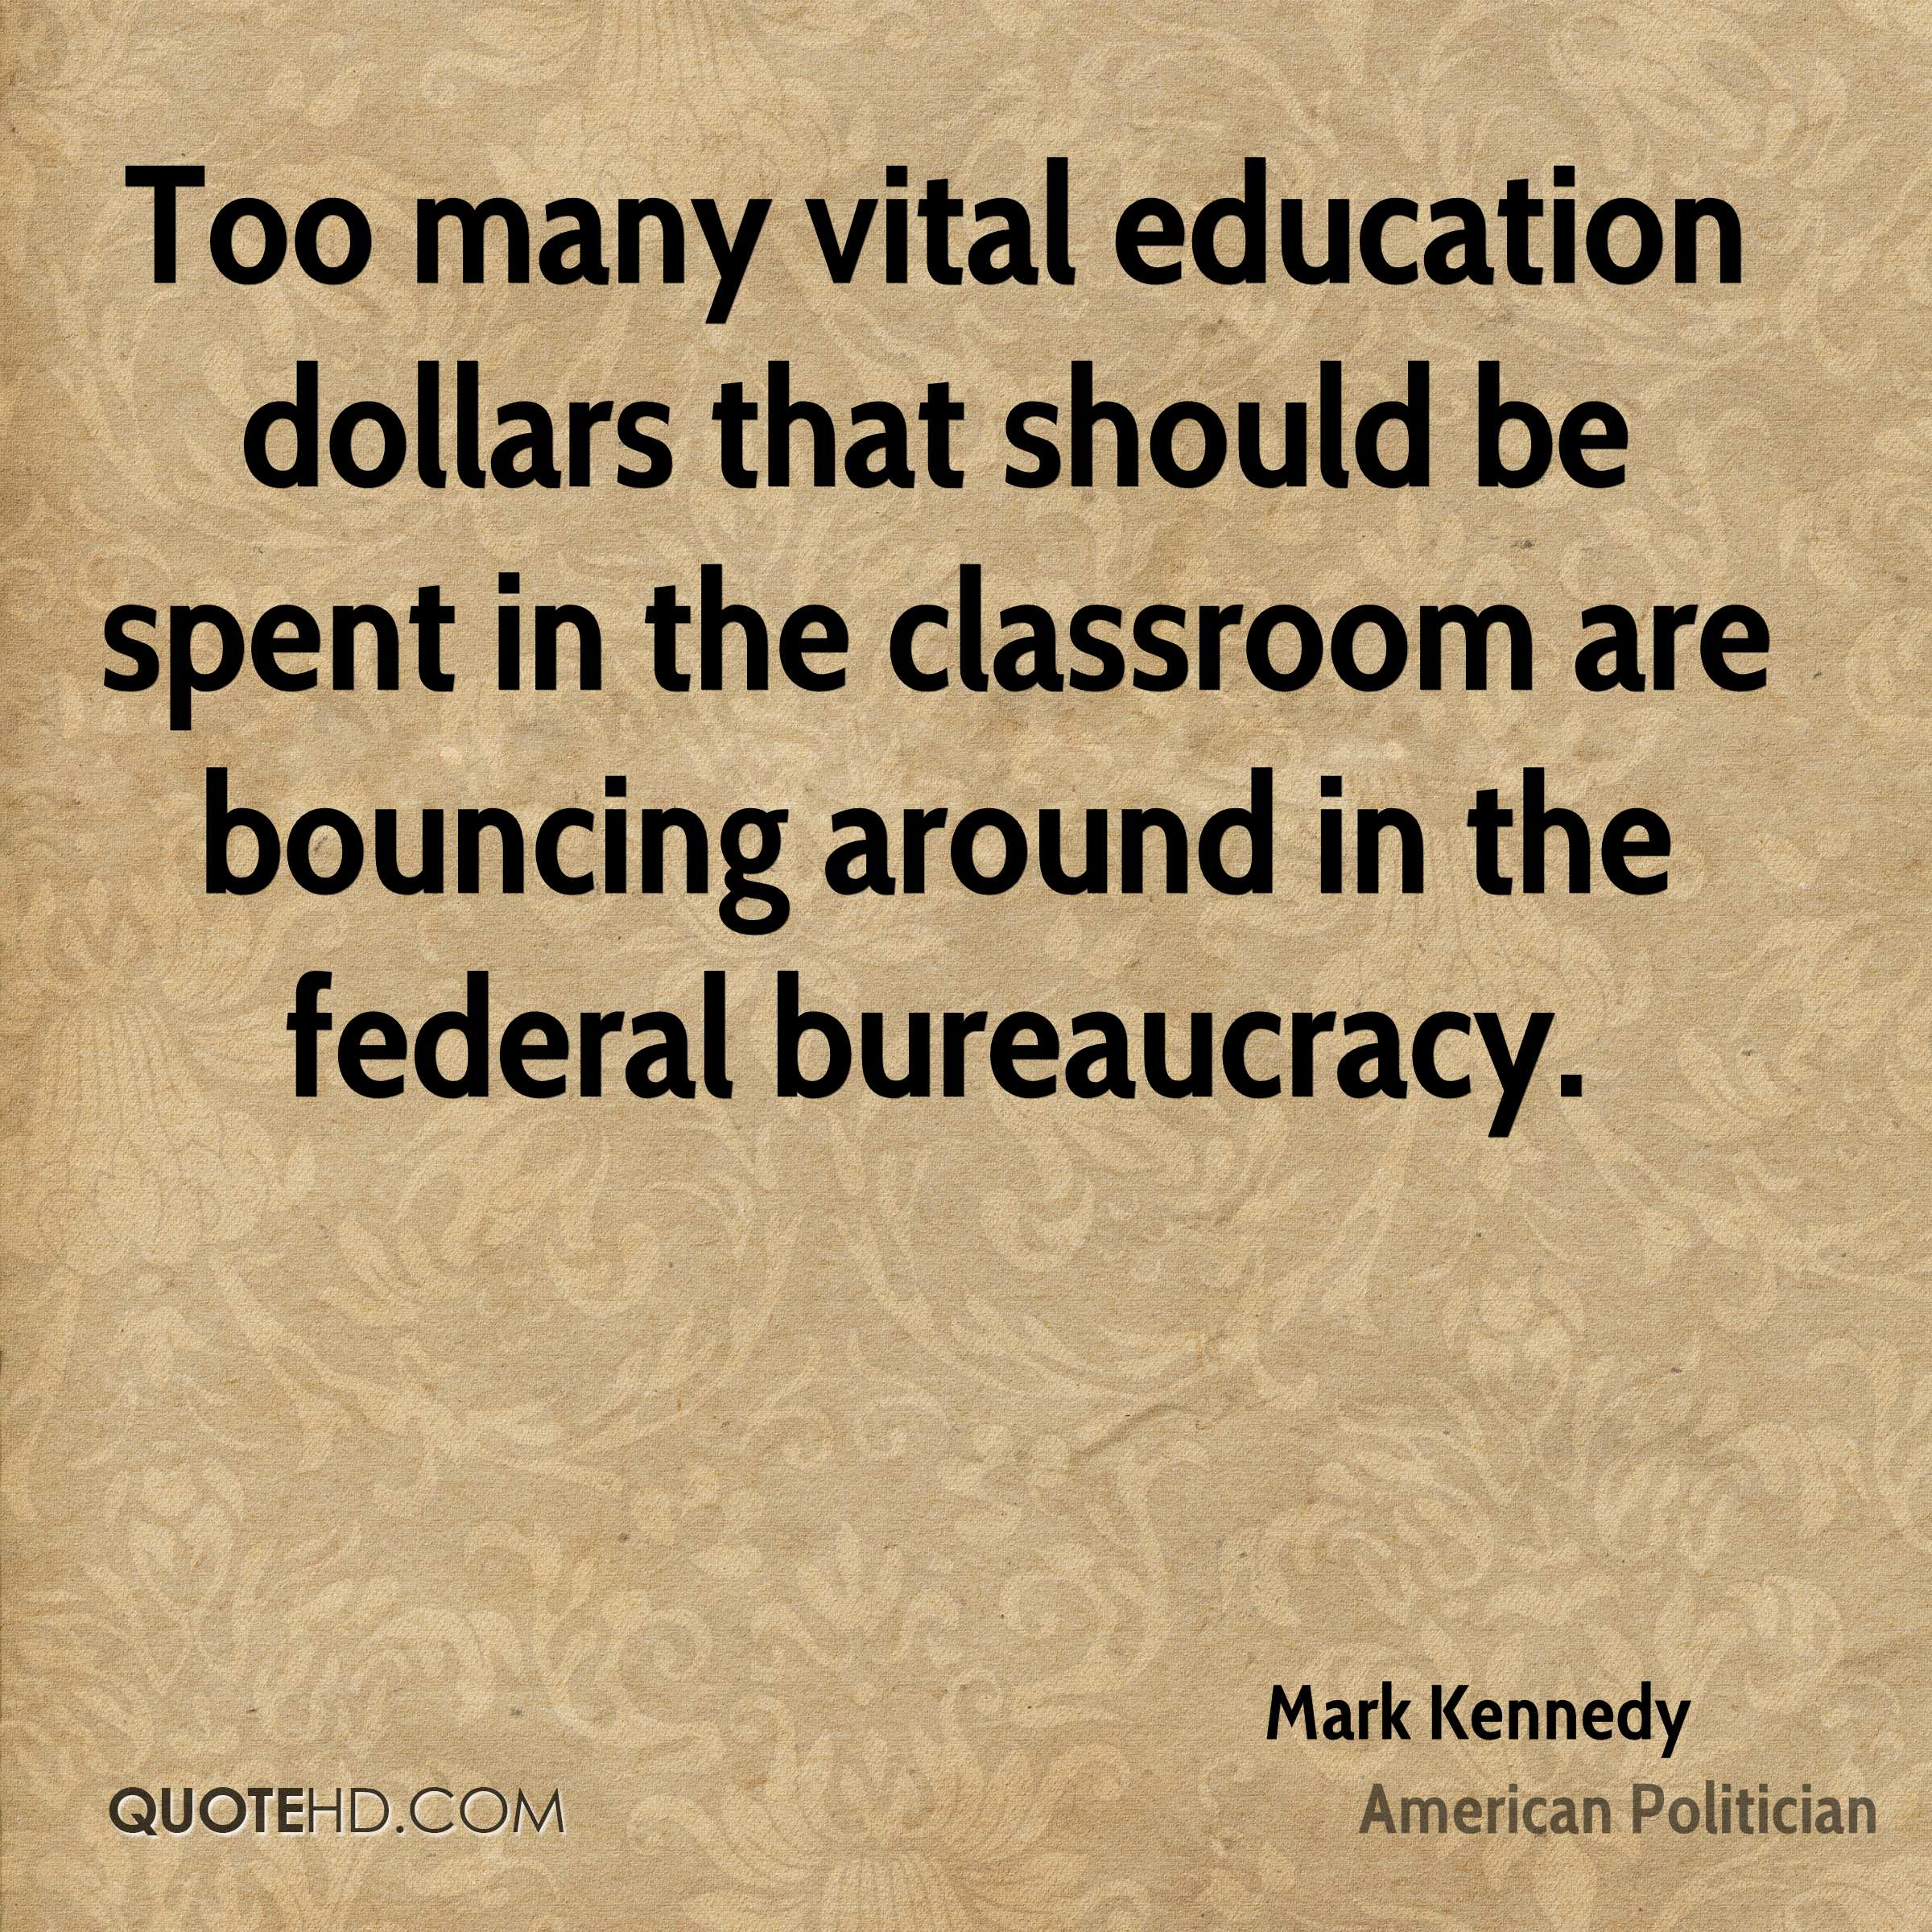 Too many vital education dollars that should be spent in the classroom are bouncing around in the federal bureaucracy.